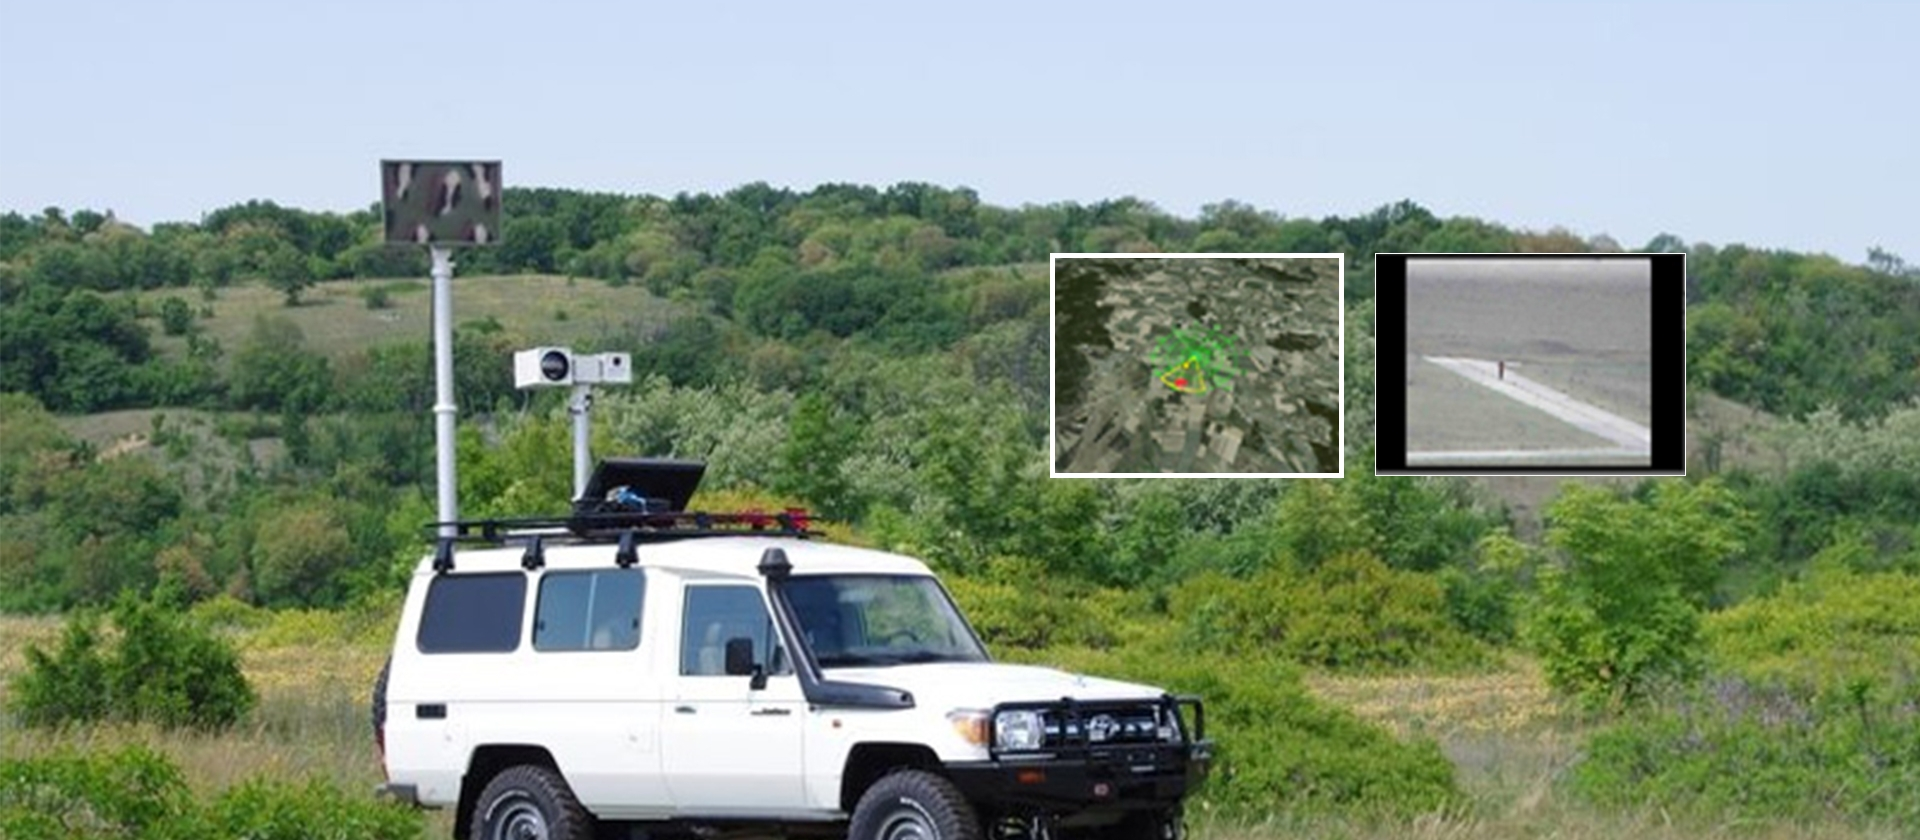 Portable Ground Surveillance Radar